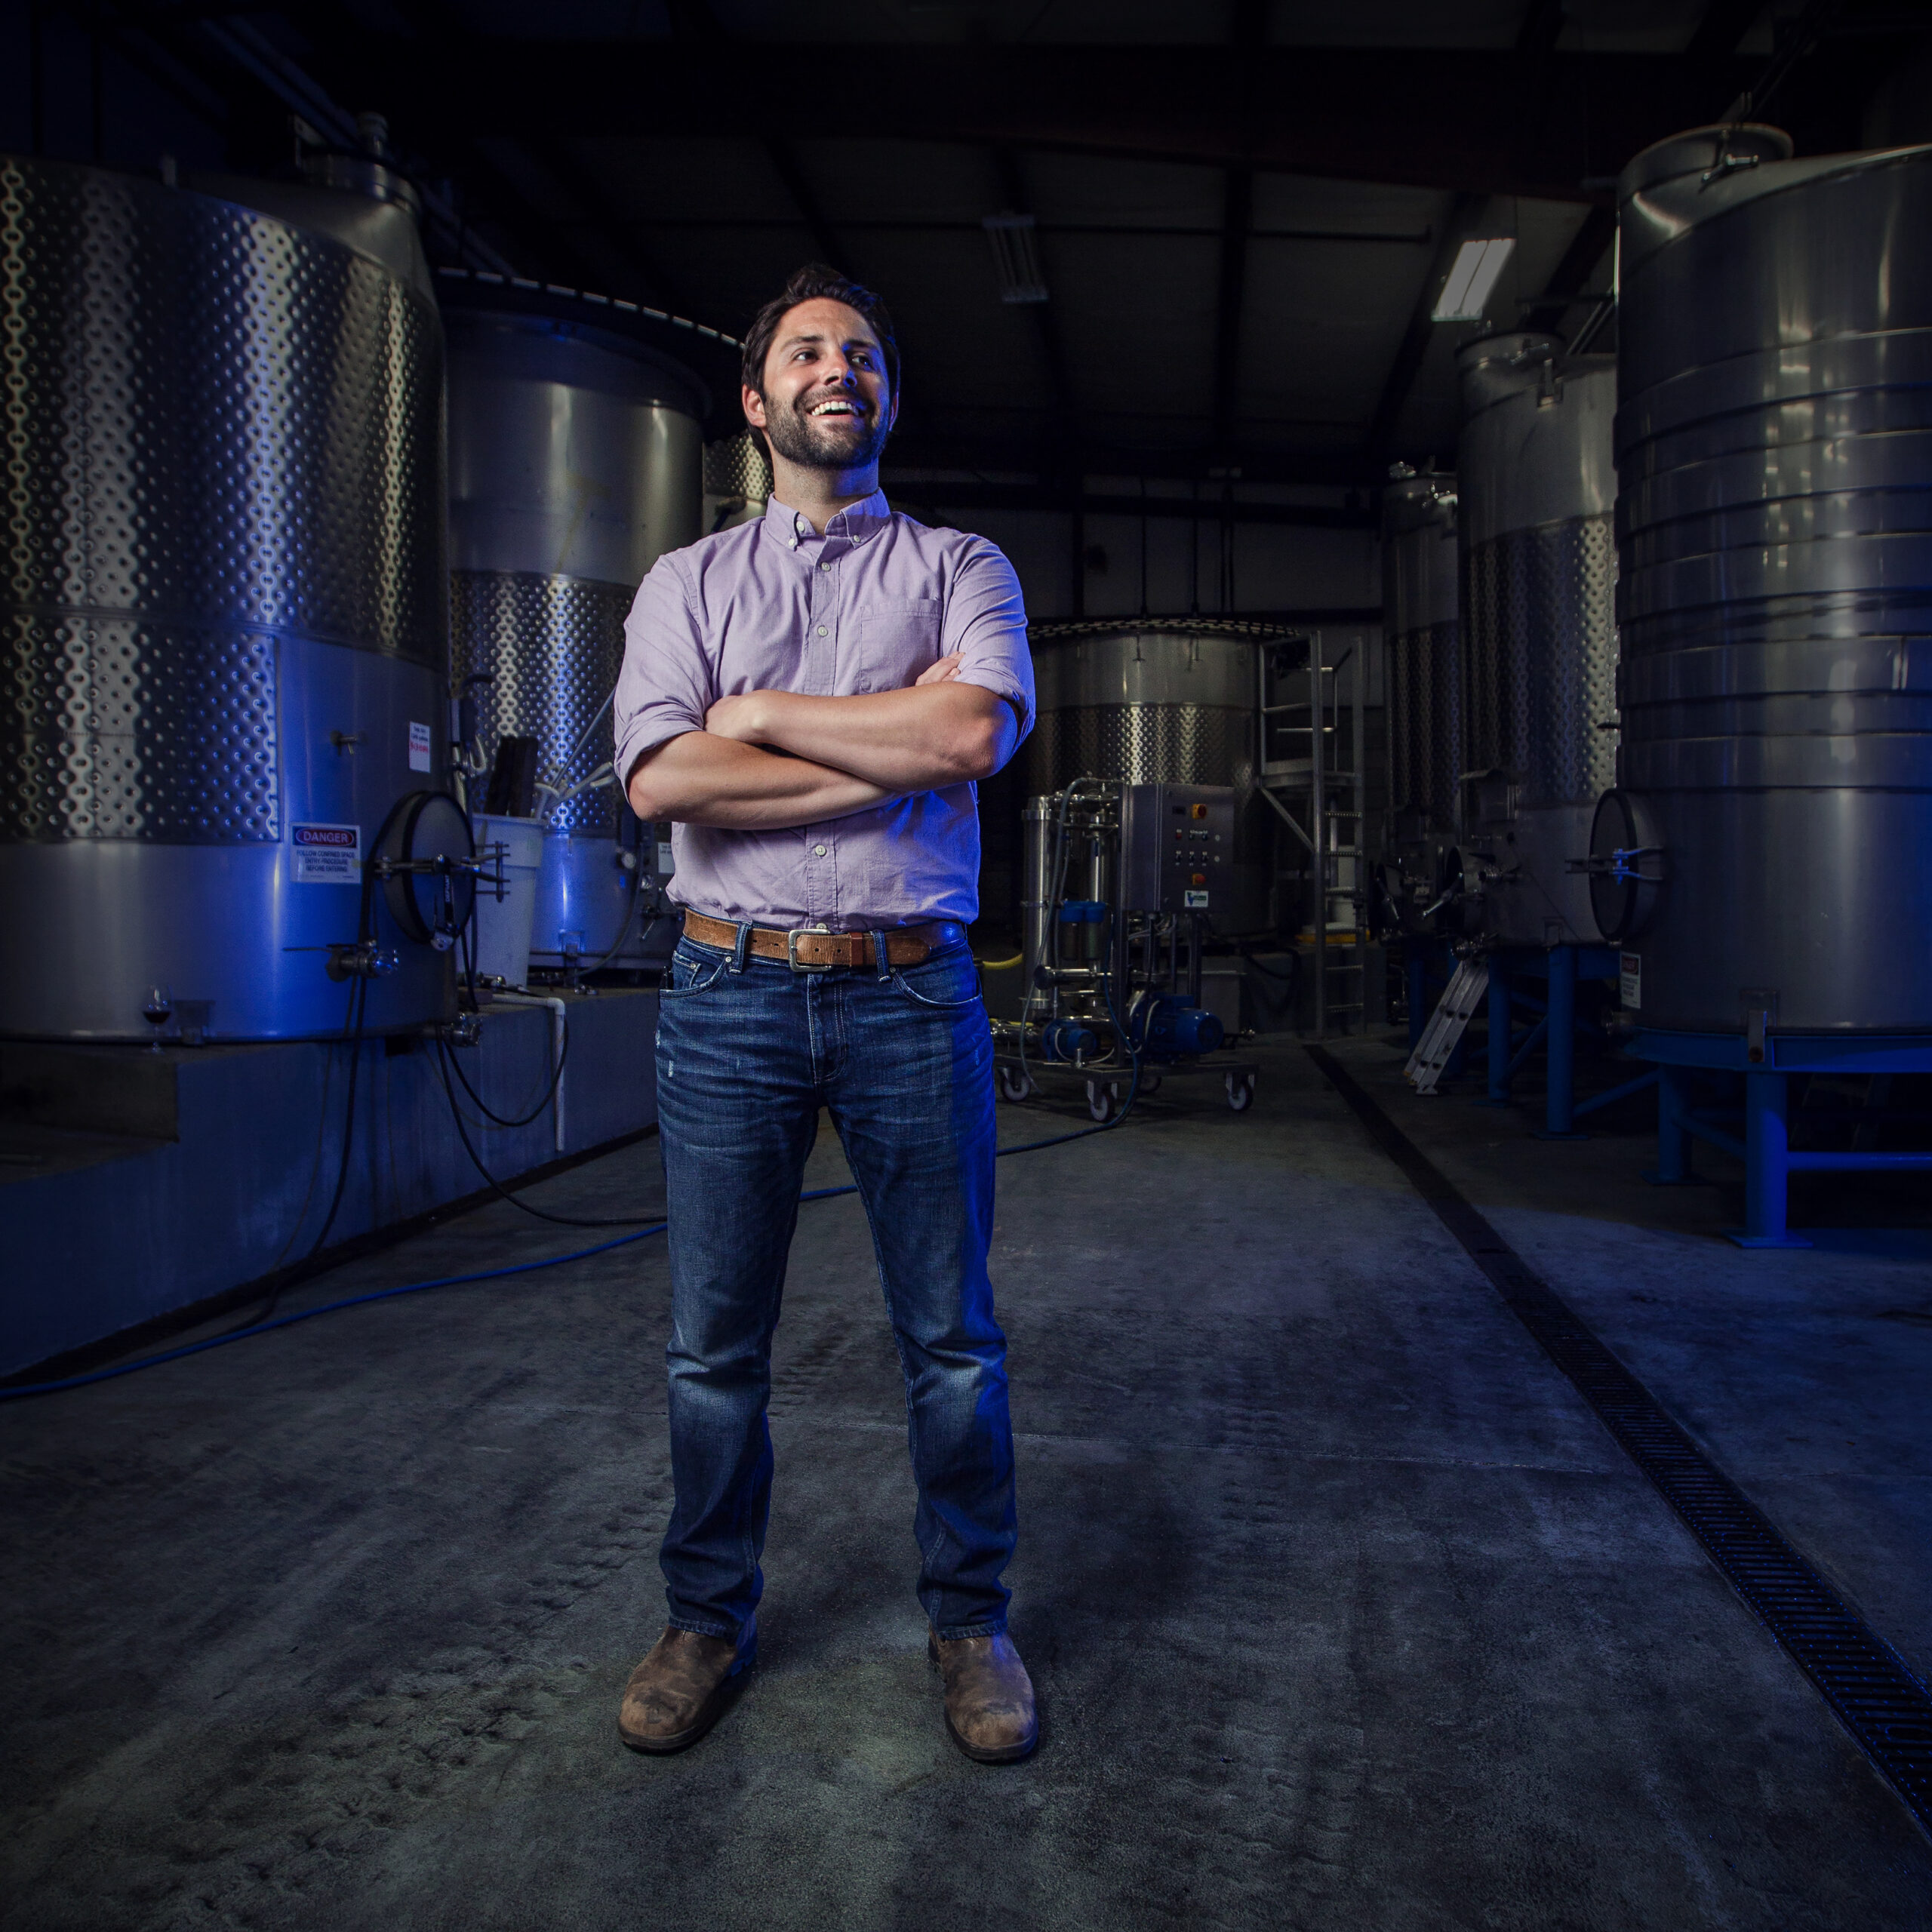 Winemaker Eric Johnson stands in the winery after being names head winemaker of Talley Vineyards.